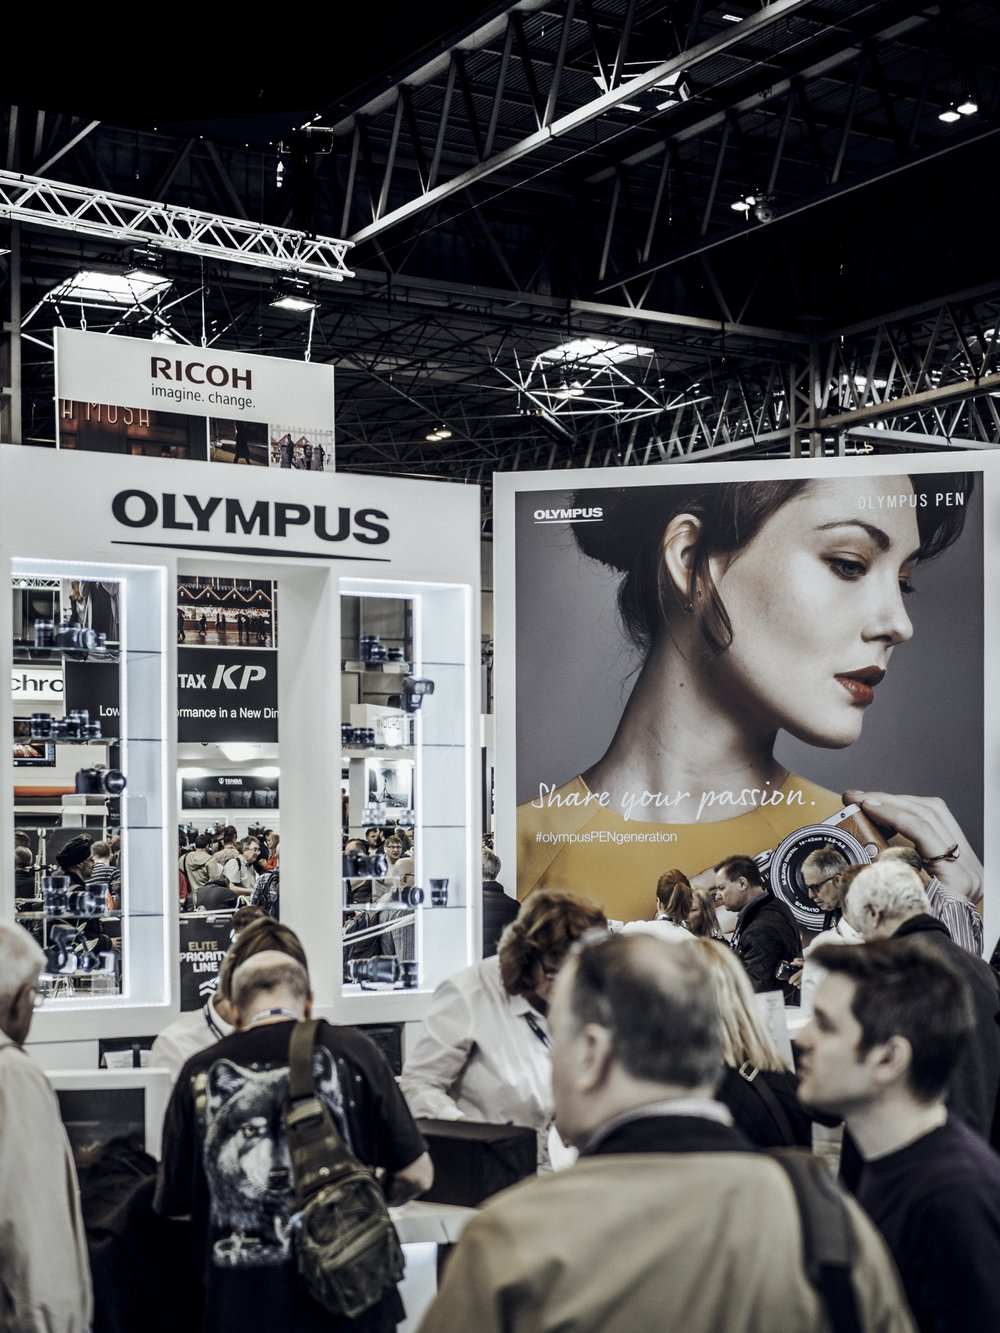 Olympus PEN E-PL8 Fashion Accessories Campaign Photoshoot Martine Lervik NEC The Photography Show TPS Exhibition